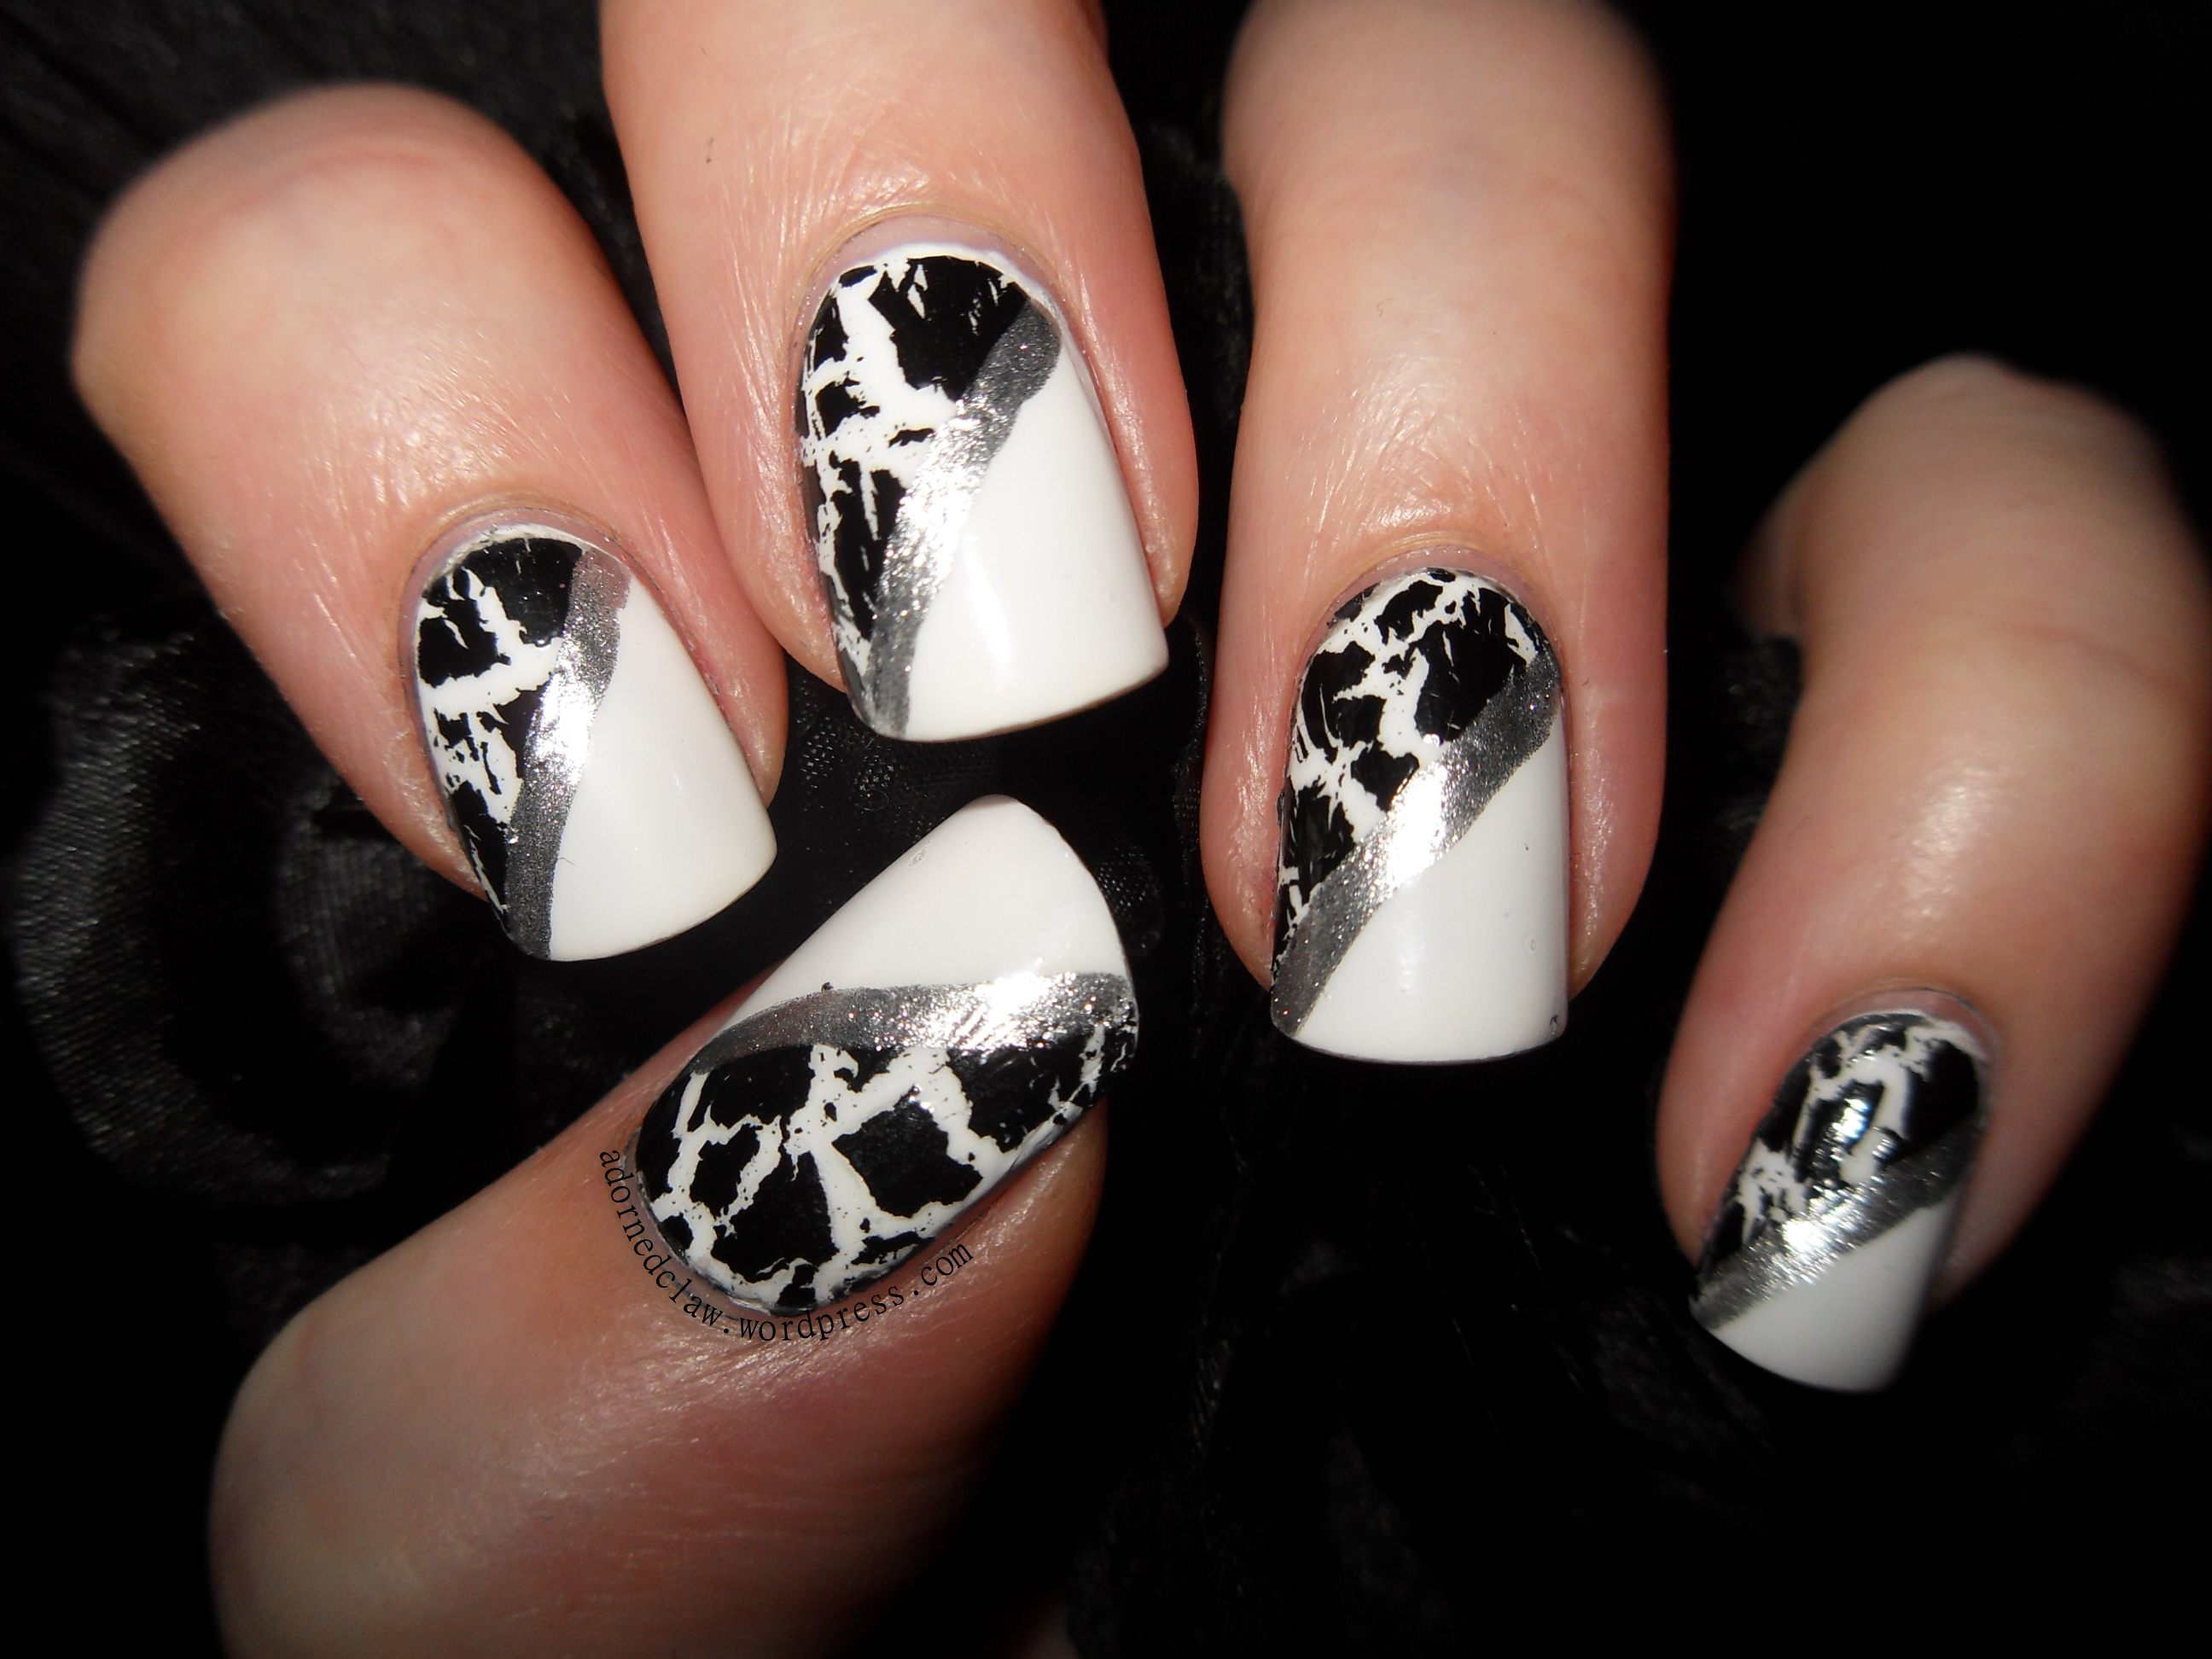 Crackle Polish Experiment! | The Adorned Claw